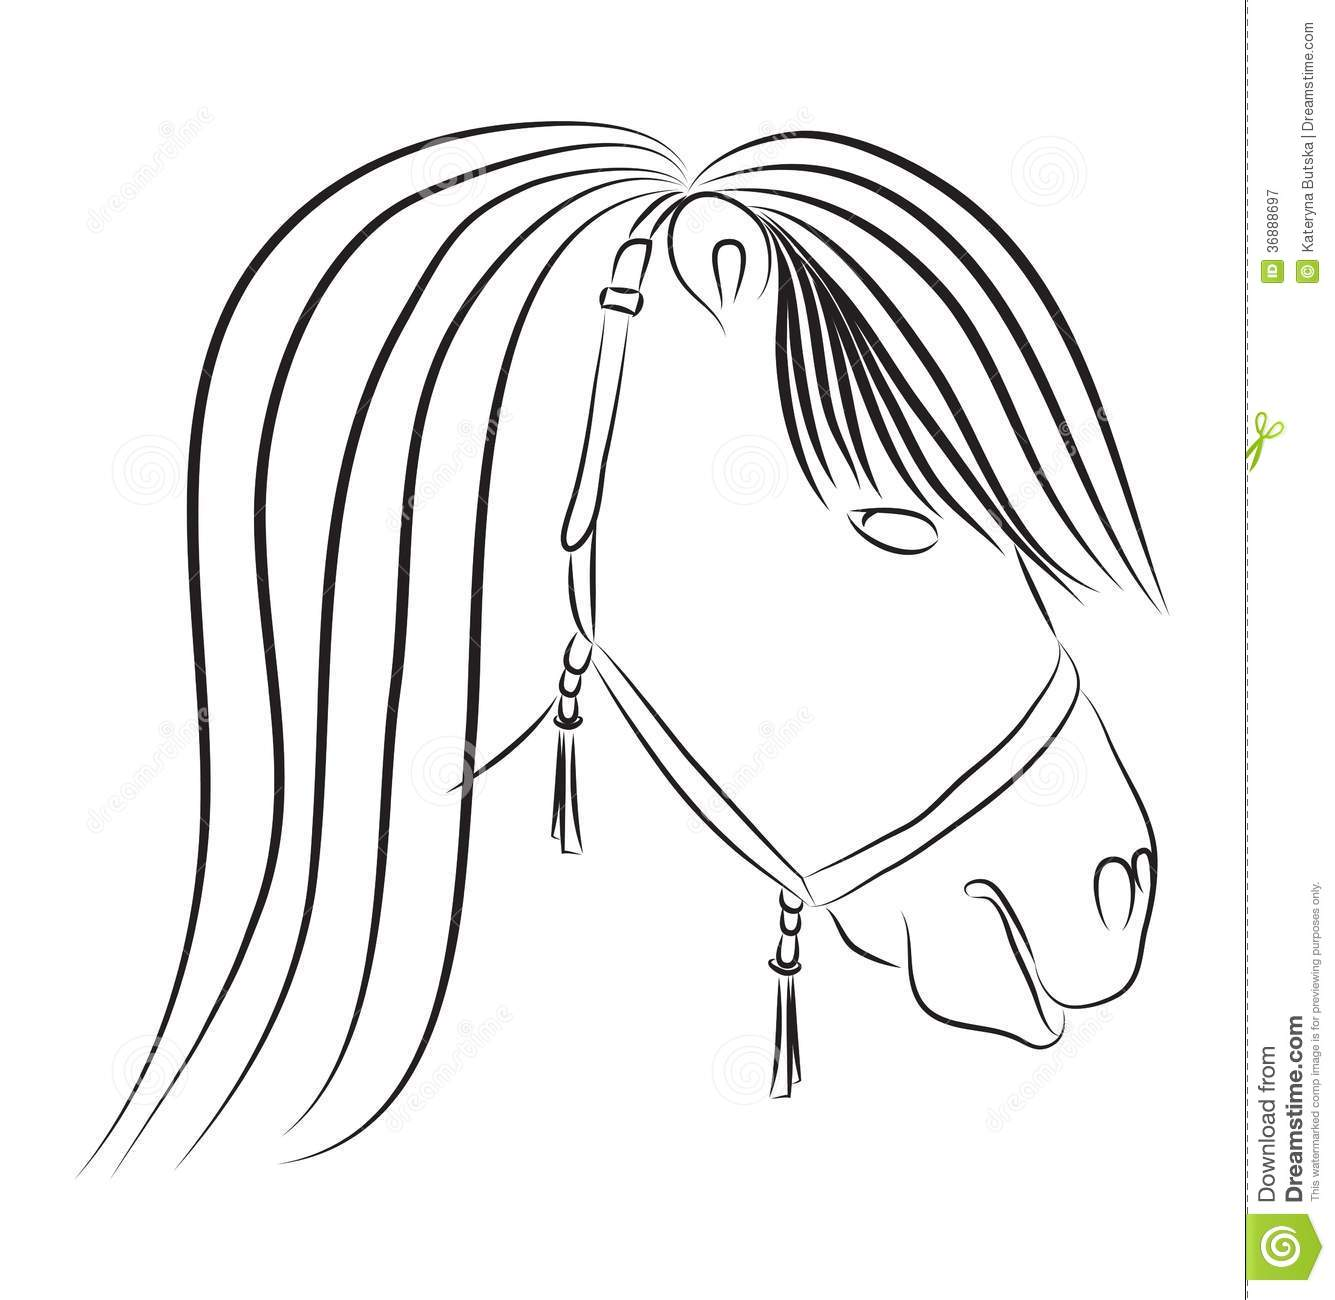 Horse Head In Sketch Style Stock Vector